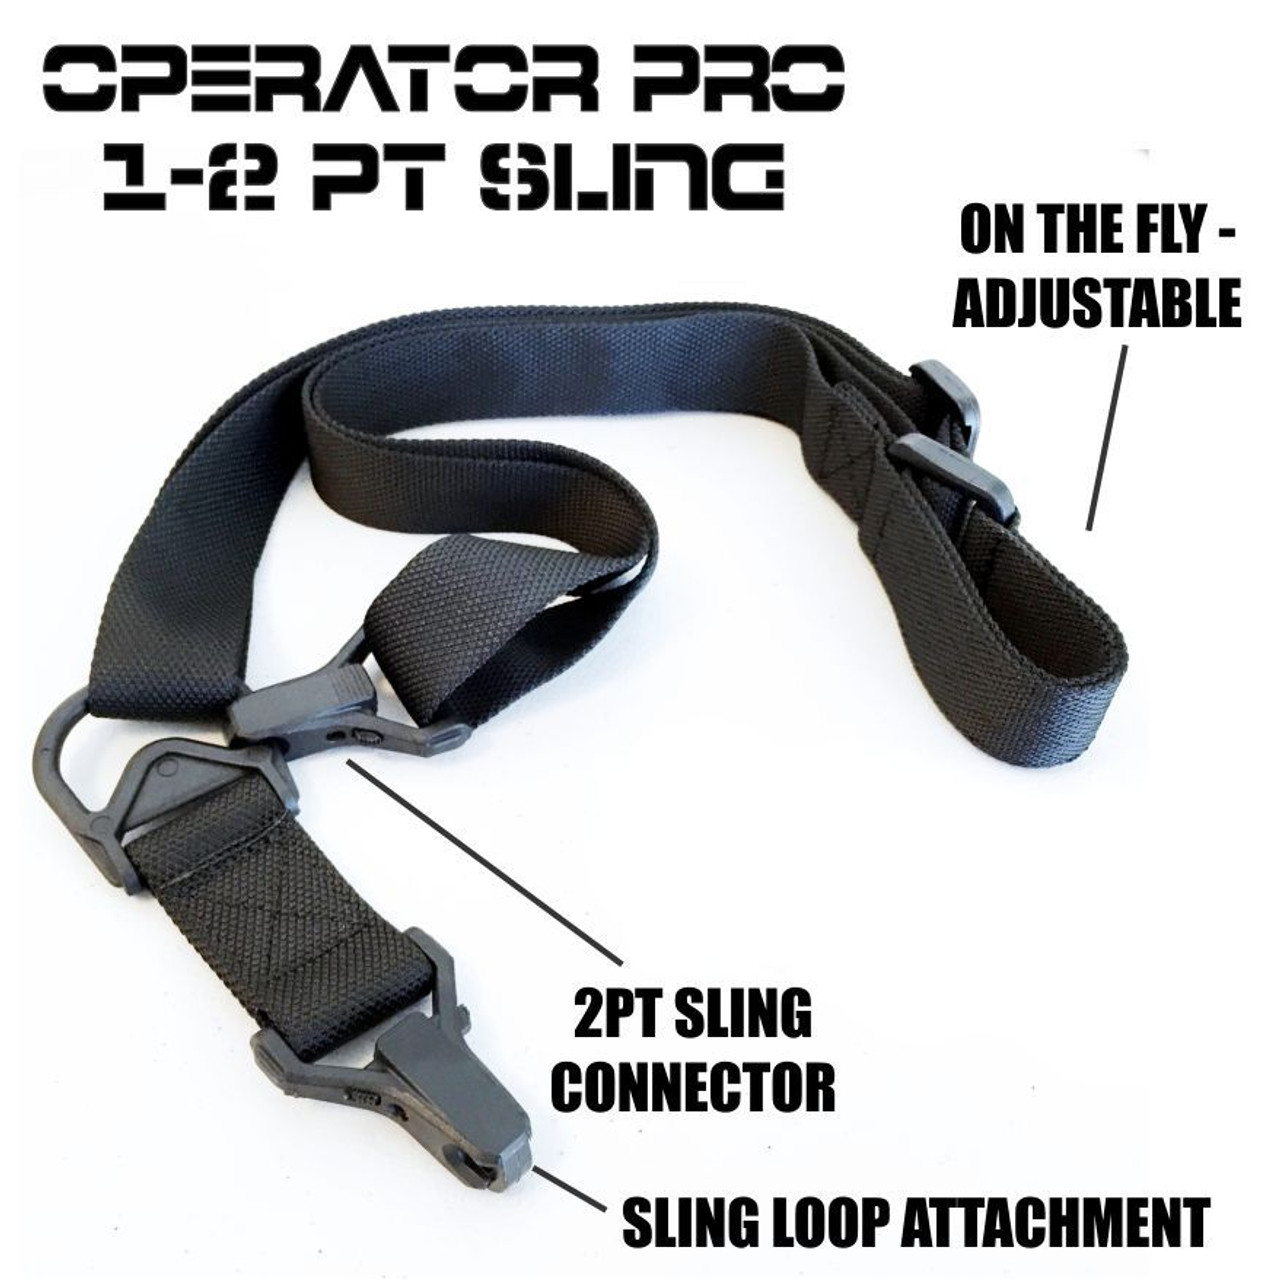 Operator PRO Multi Use Adjustable Sling | Black (TG-SLG020) single point